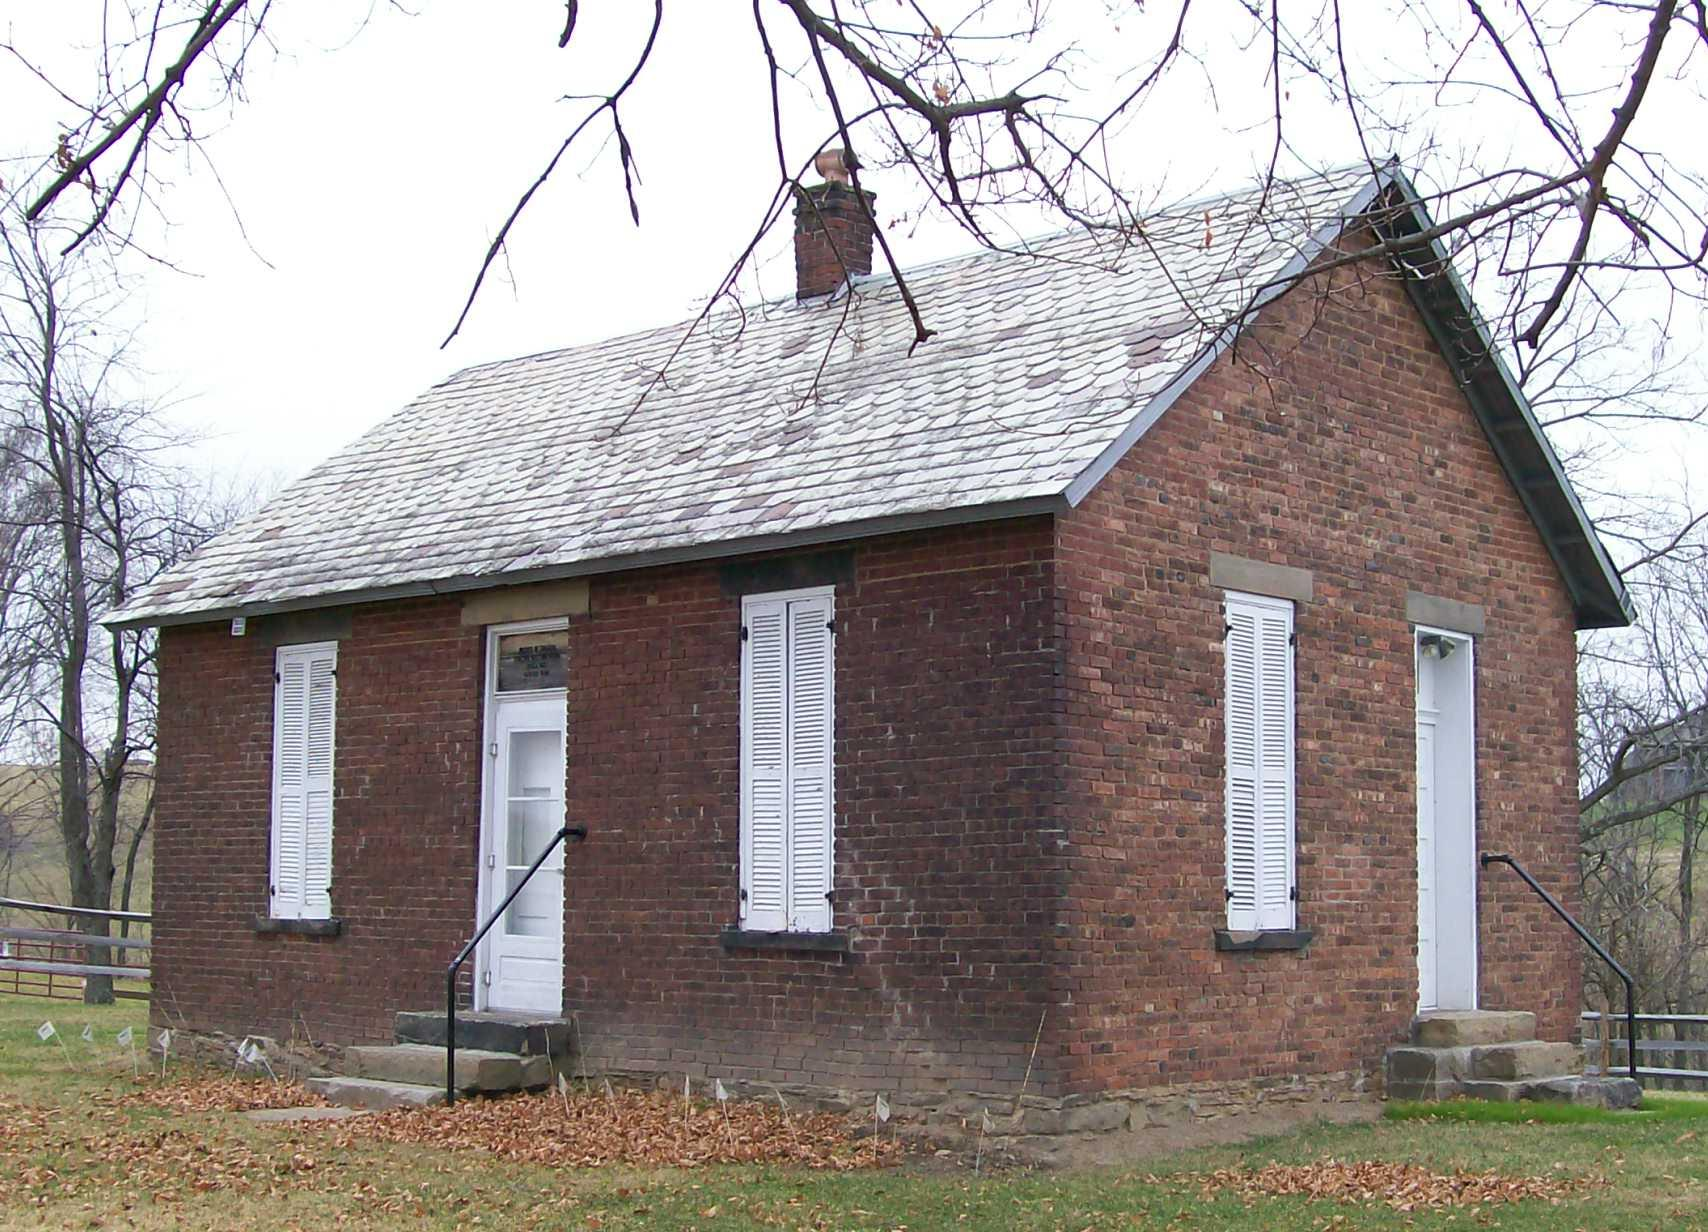 Concord_Hicksite_Friends_Meetinghouse